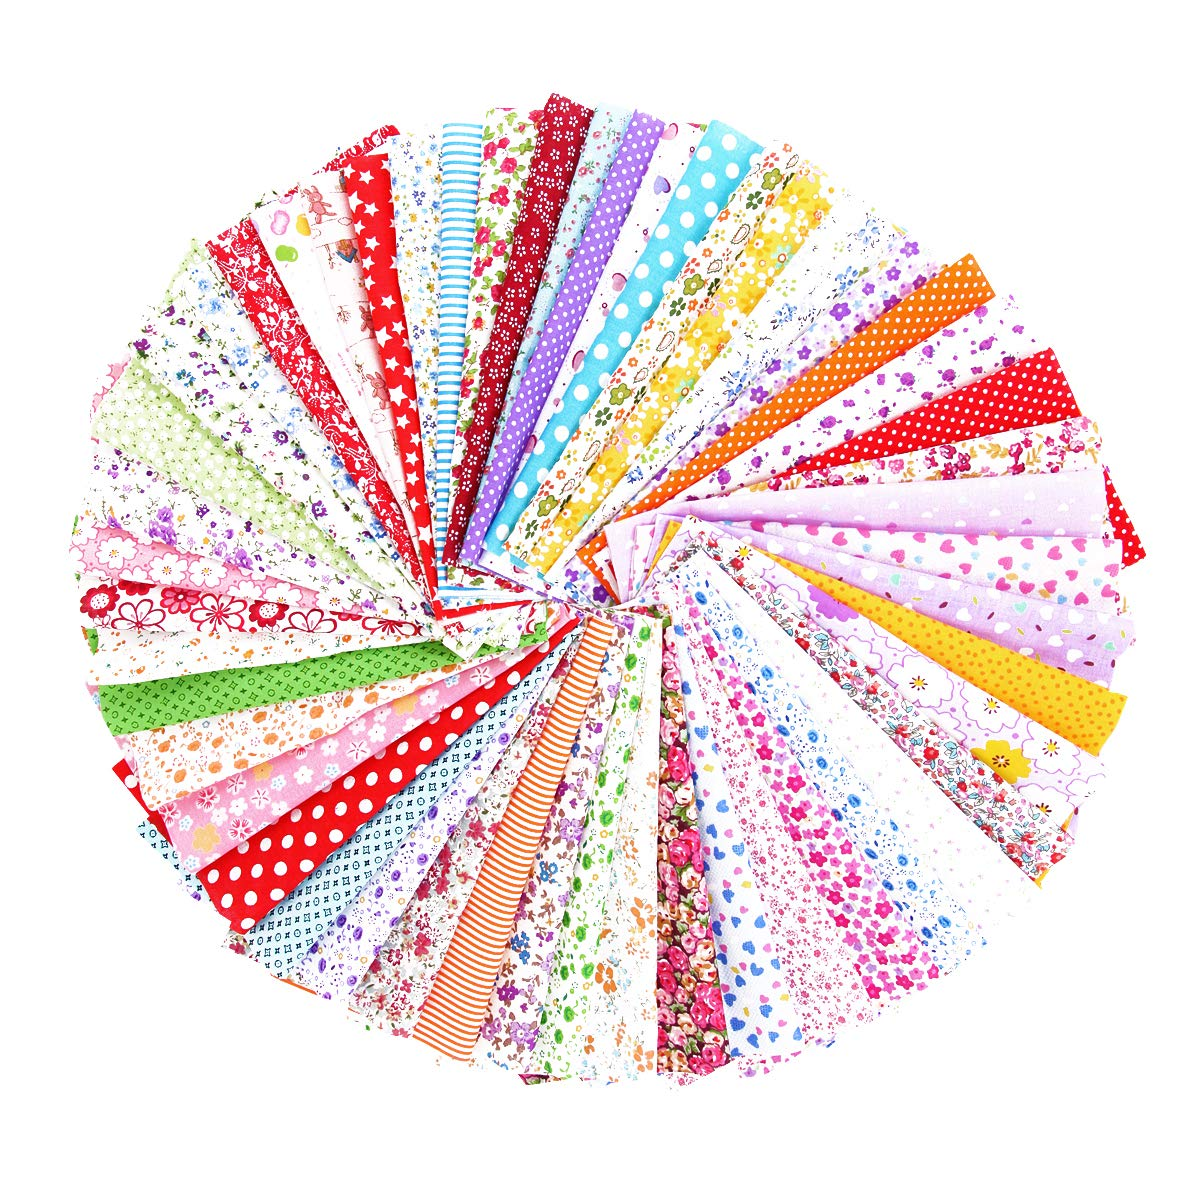 50PCS BcPowr 10'' x10'' (25cmx25cm) Different Pattern Fabric Patchwork Craft Cotton DIY Sewing Scrapbooking Quilting Dot Pattern